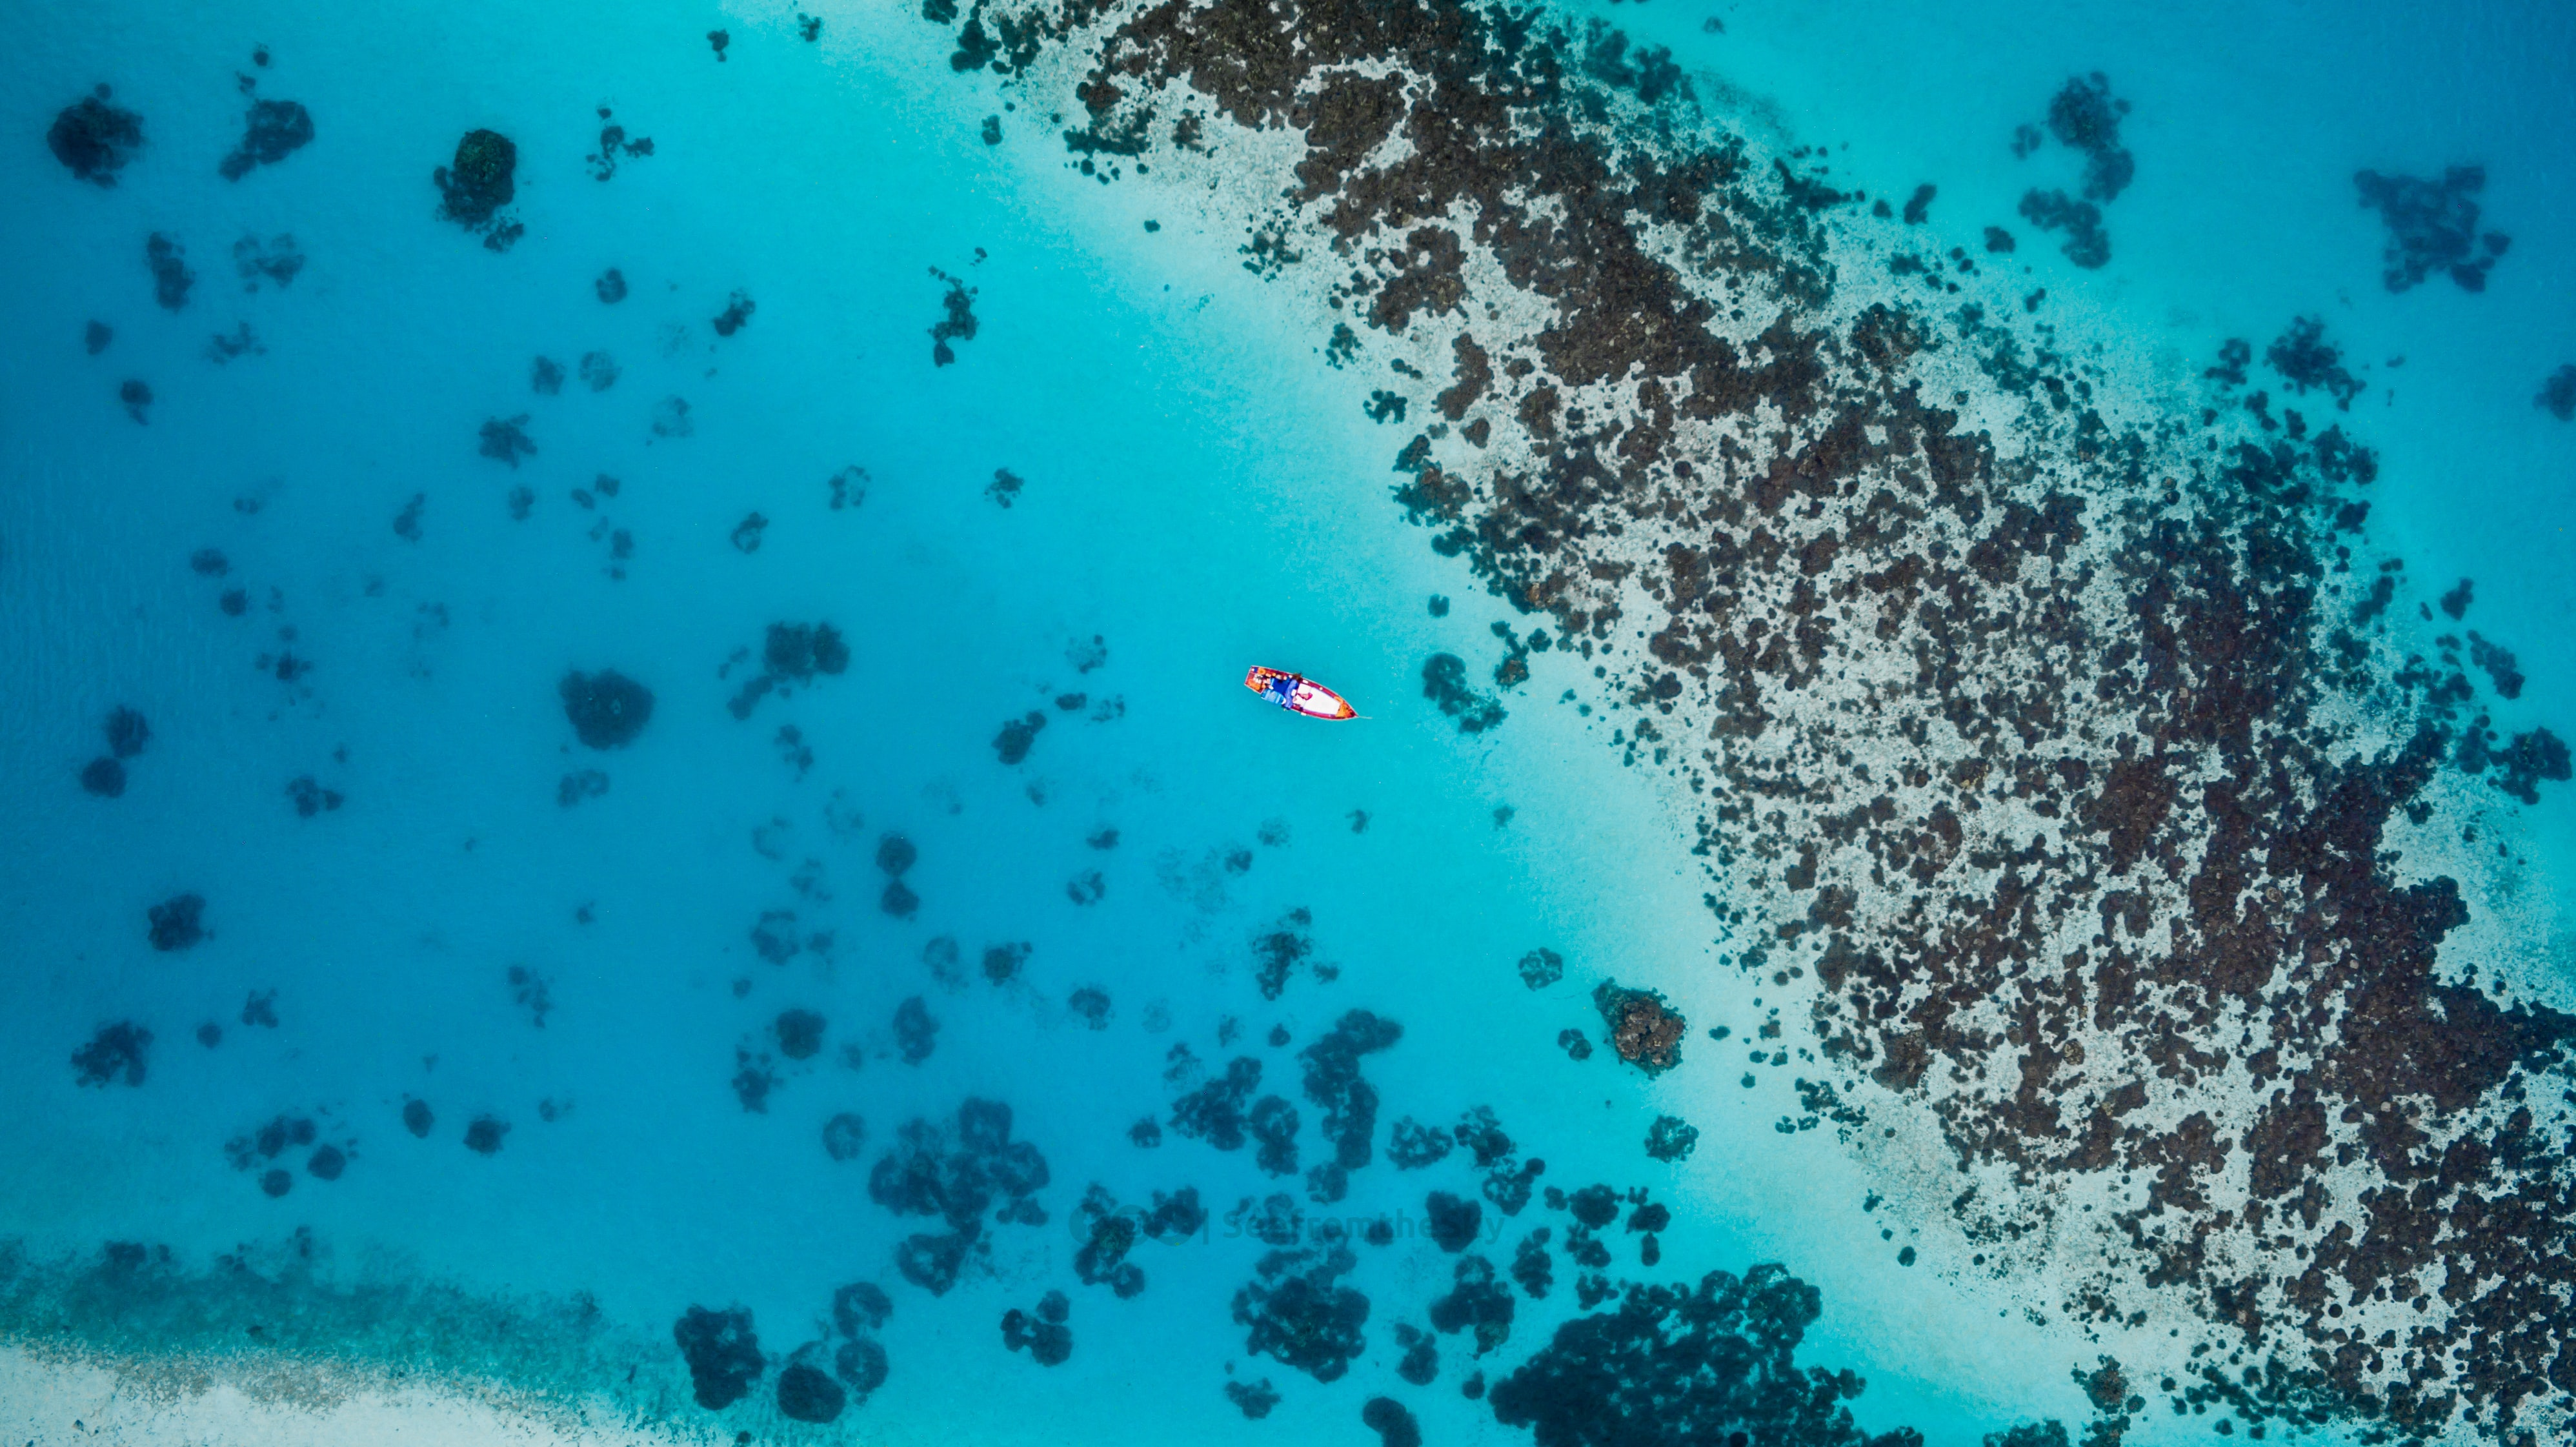 An aerial drone shot of a boat in the sea at Maaenboodhoo, Central Province, Maldives, with the coral reef visible below the turquoise water